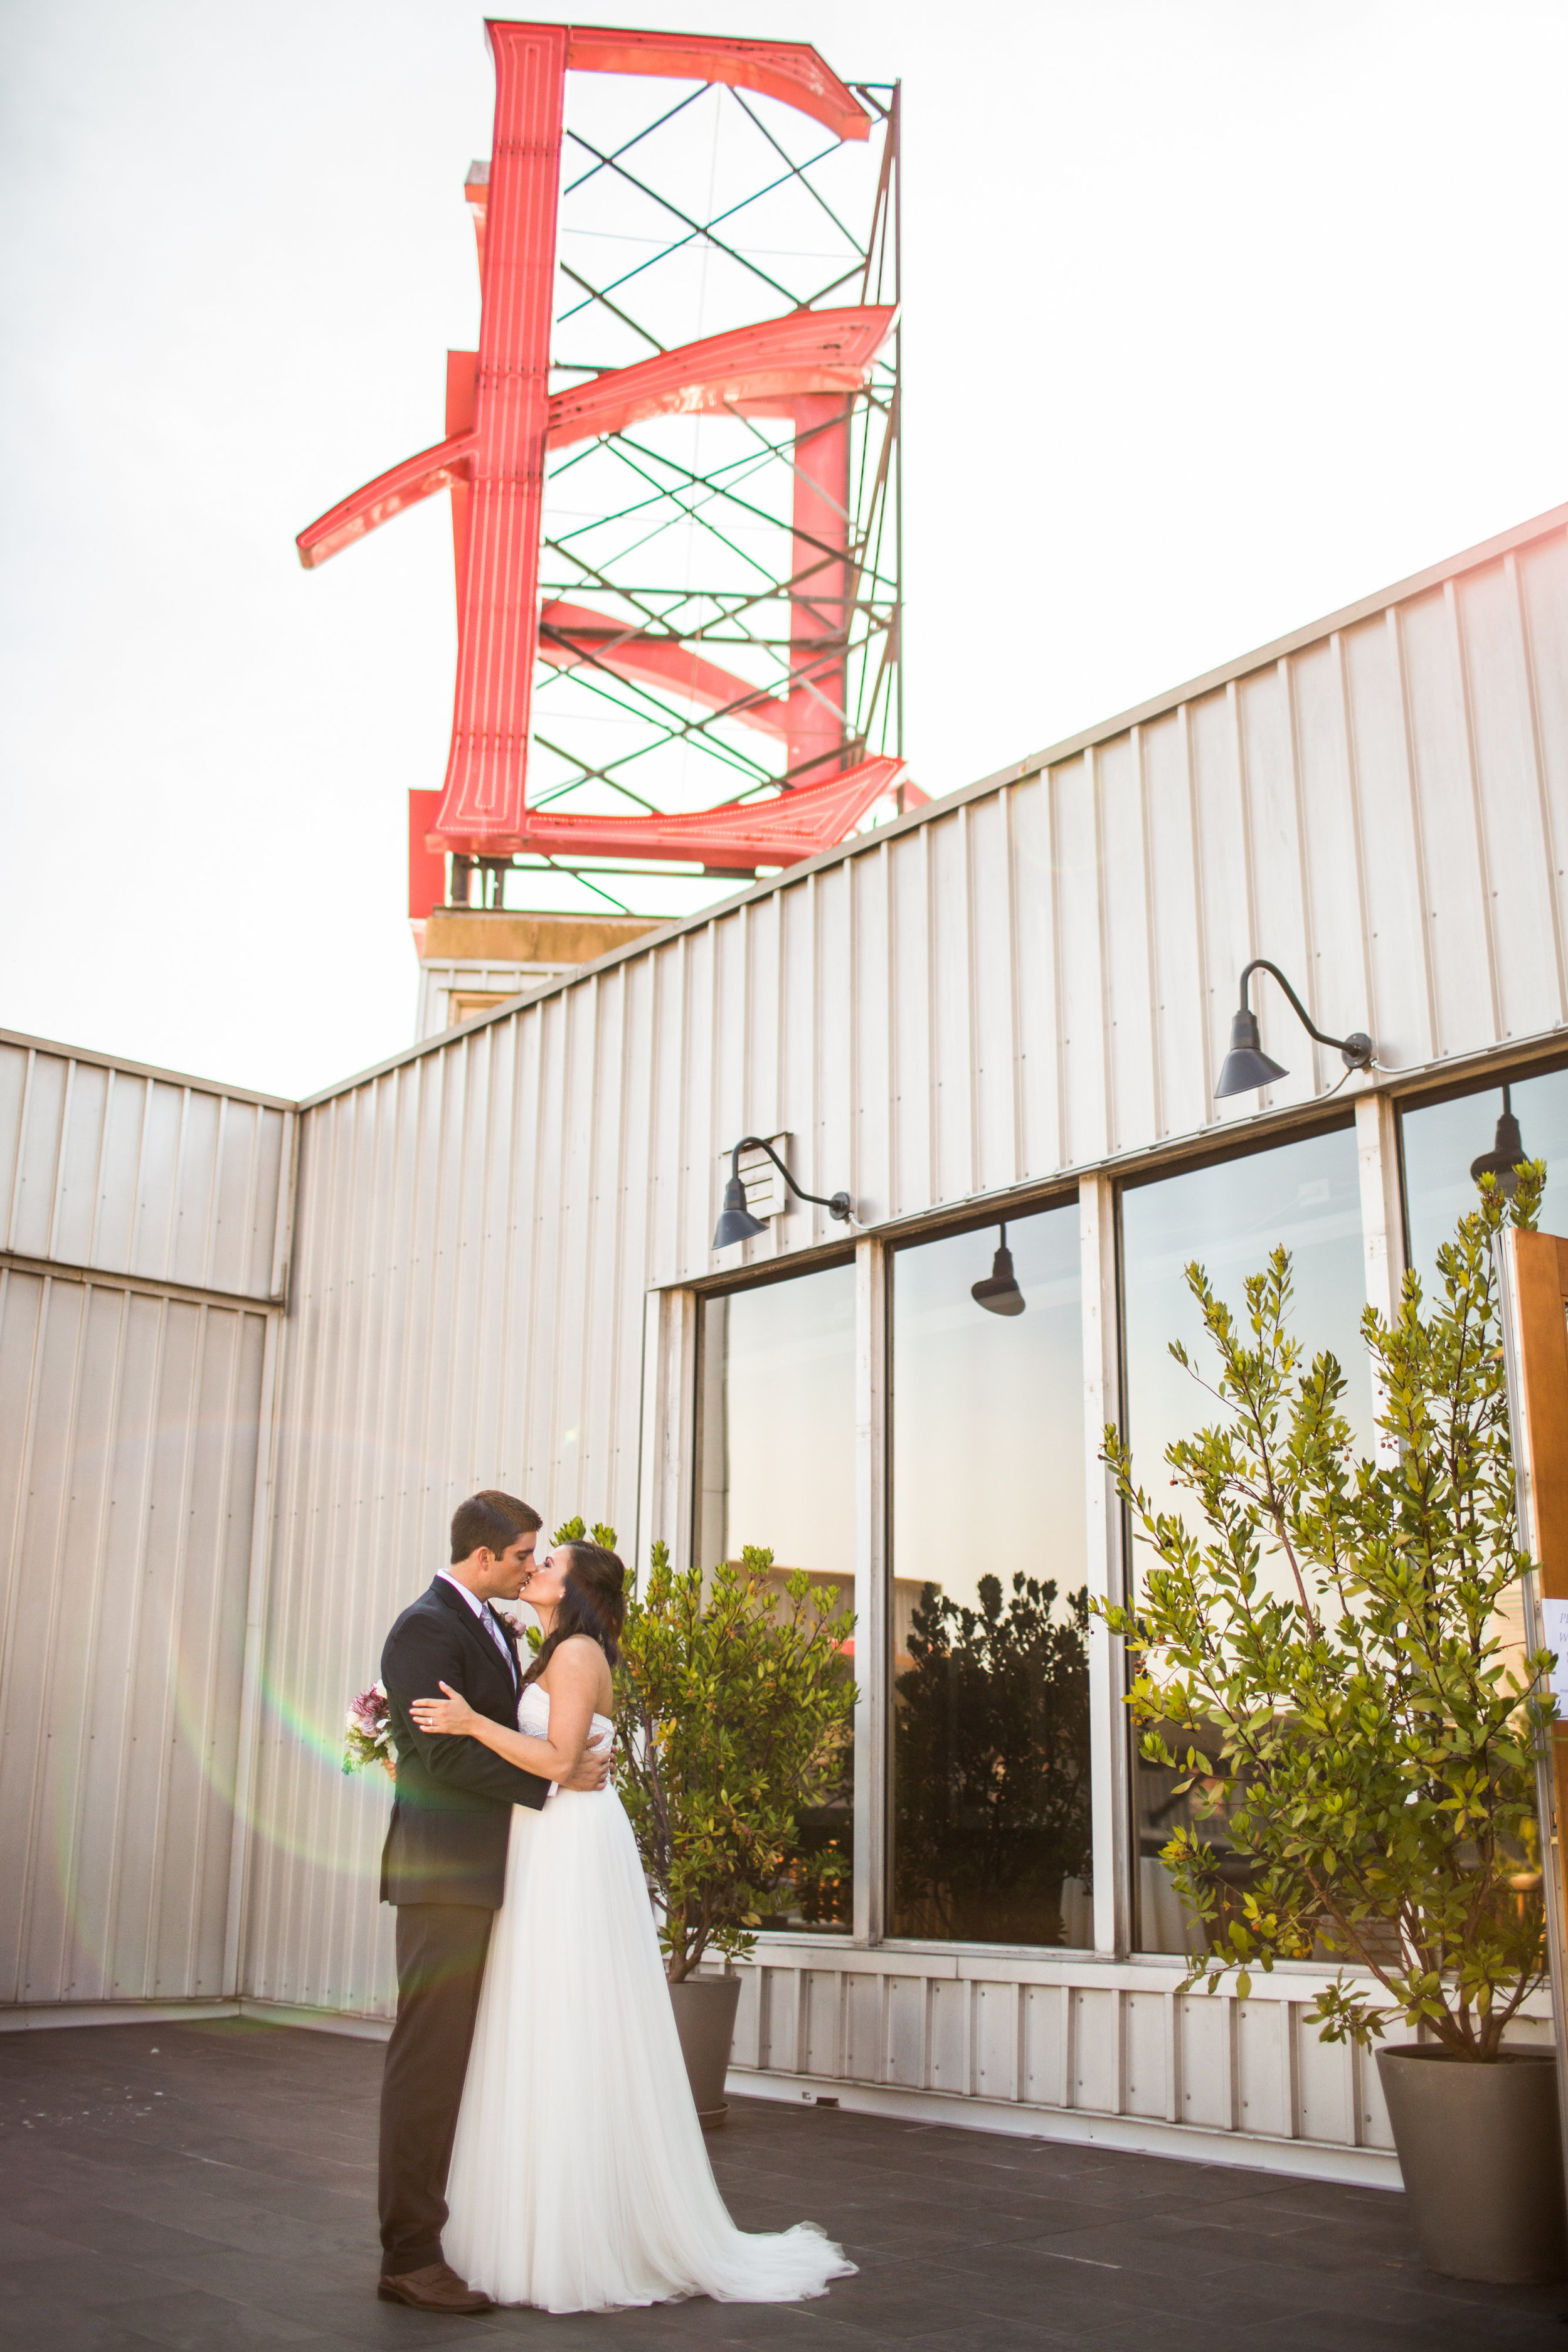 Seattle Wedding Planner, Wedding Wise | Ciccarelli Photography | Edgewater Hotel Wedding | Purple and navy blue wedding | First look photos